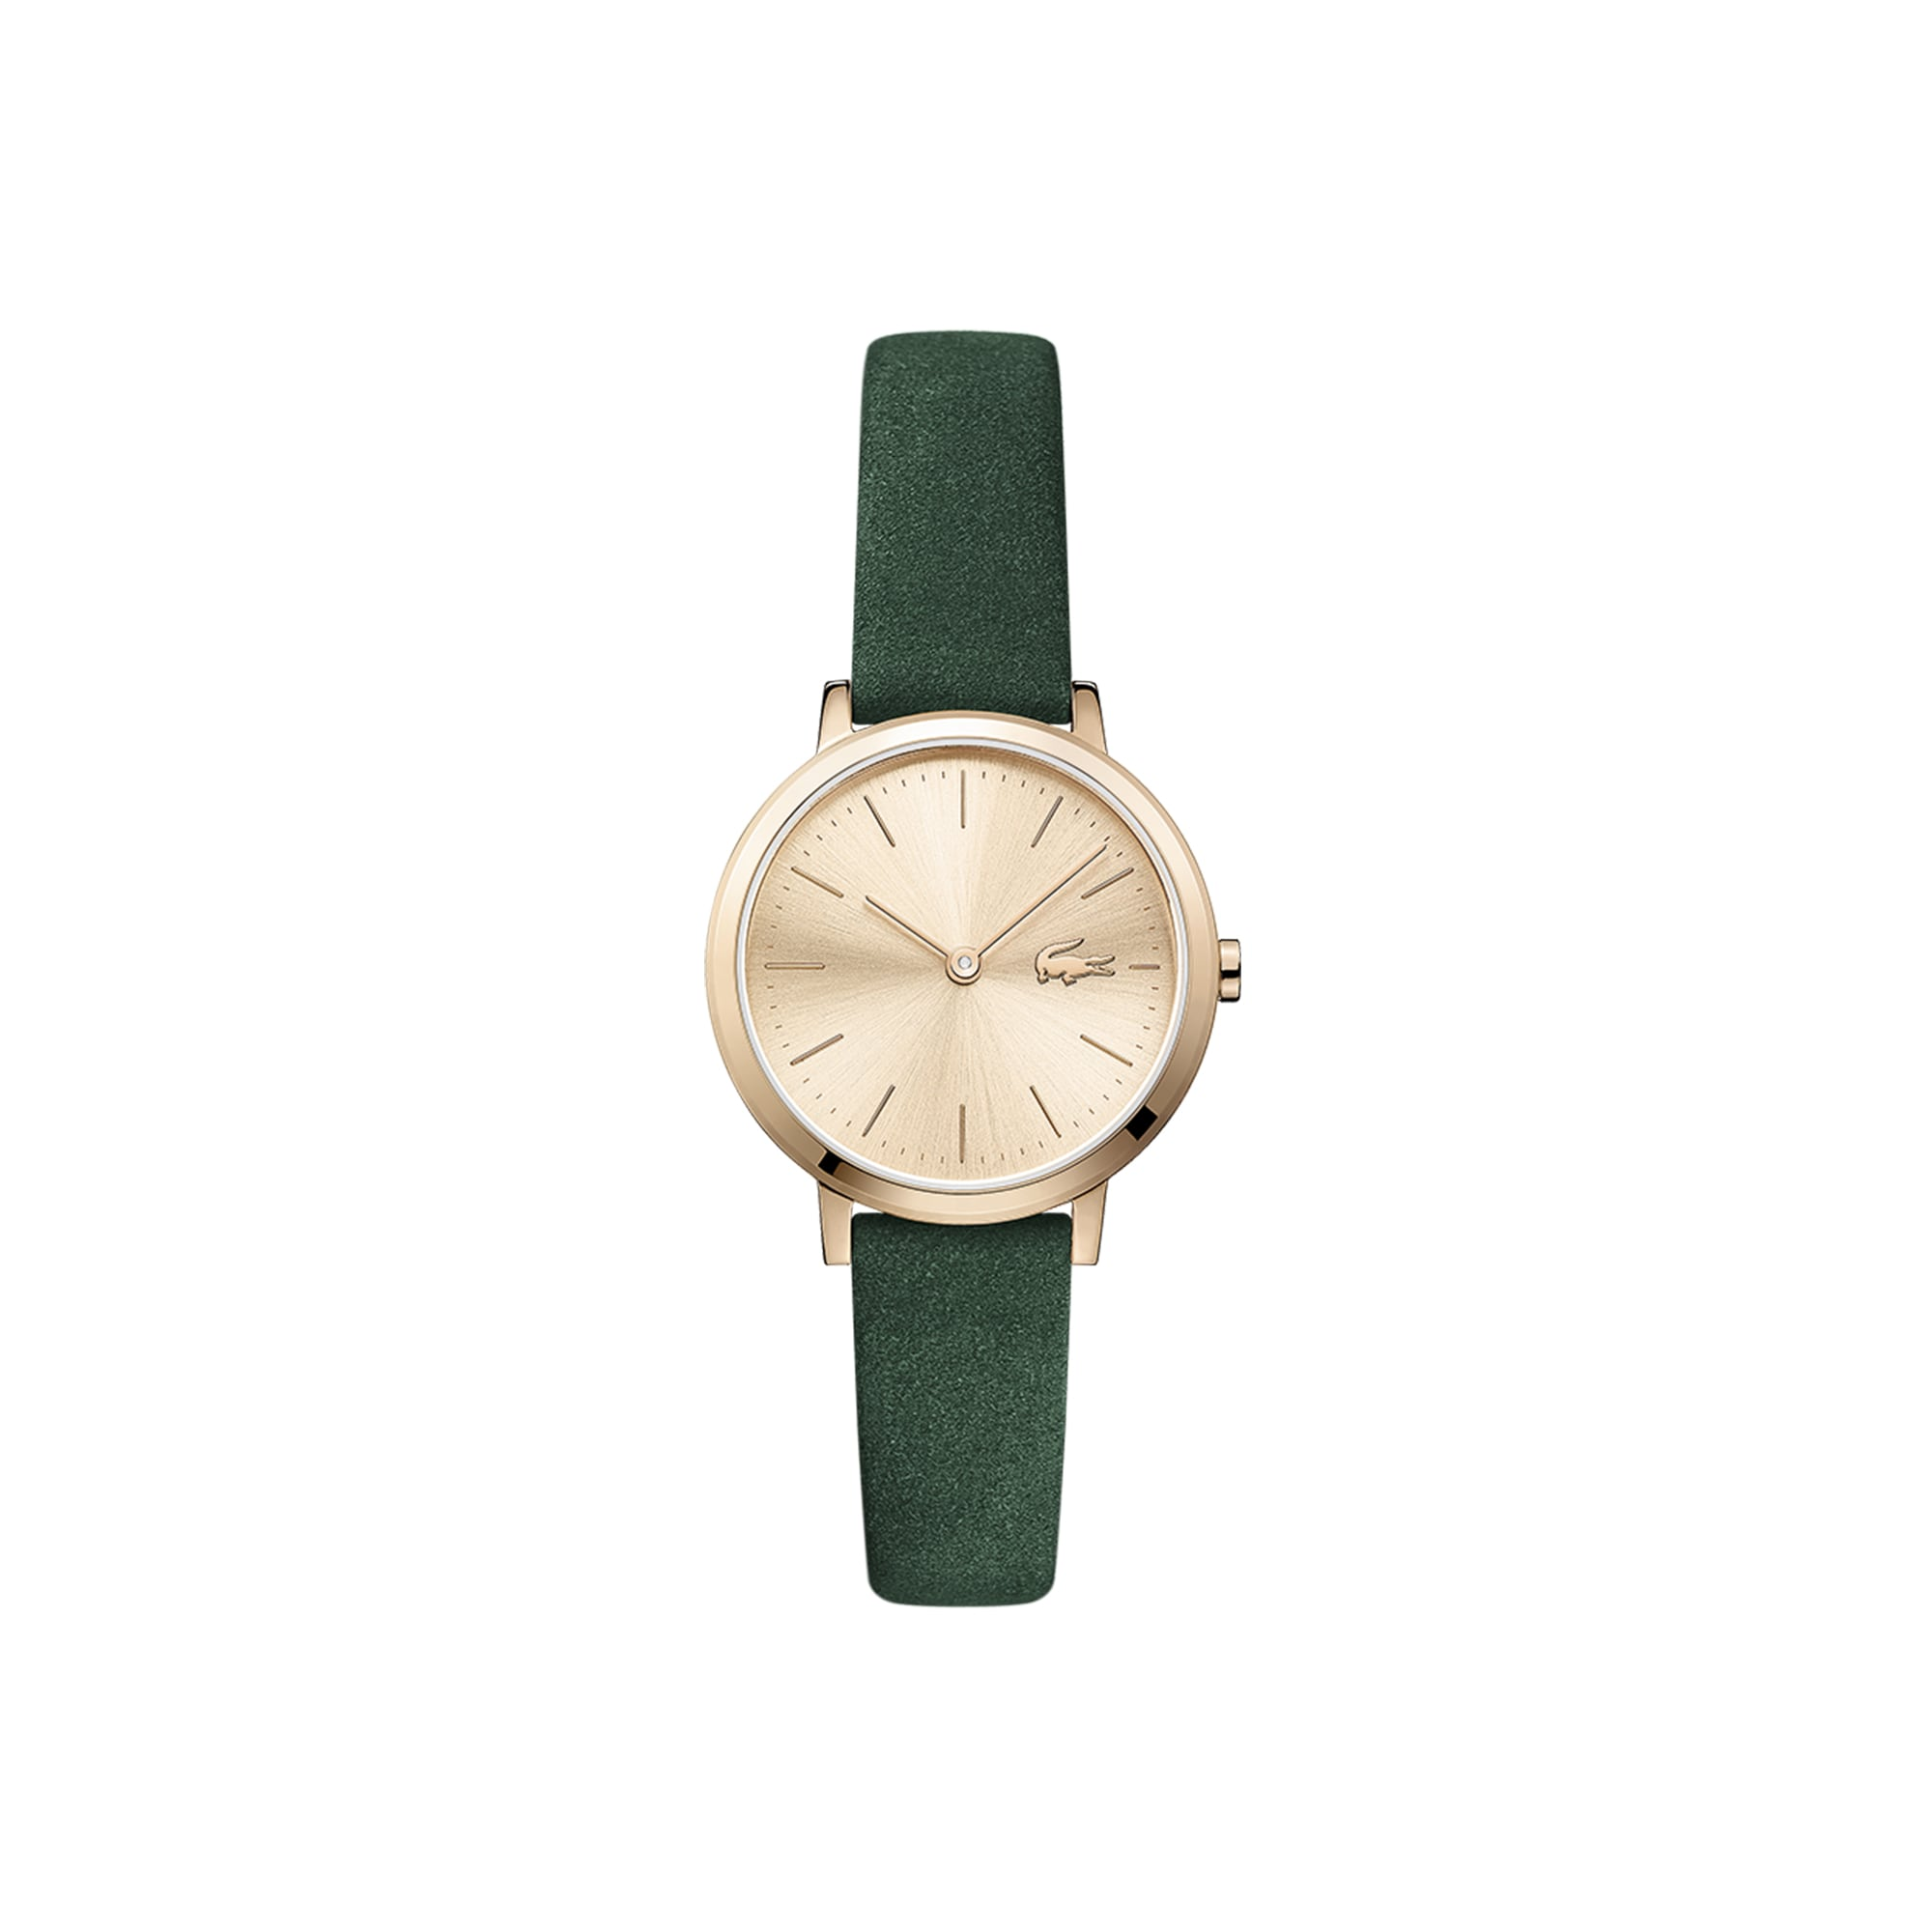 Women's Moon Ultra Slim Watch Small with Green Suede Leather Strap